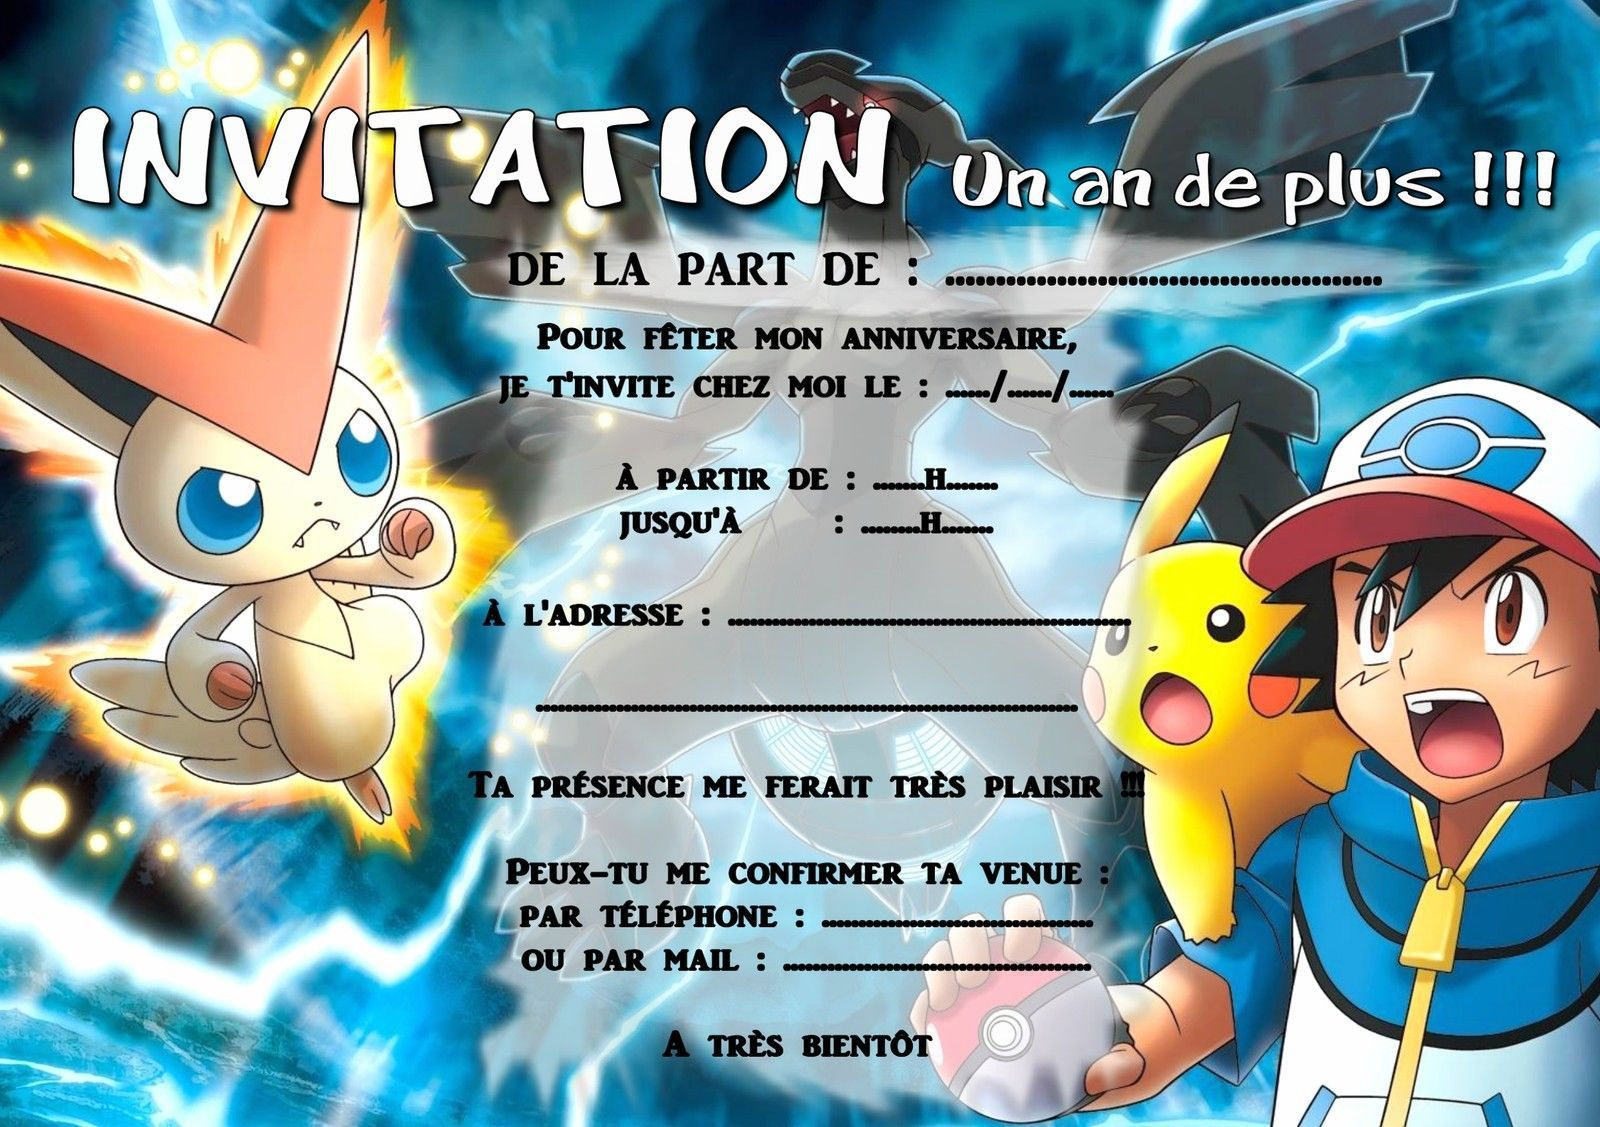 Carte invitation anniversaire pokemon imprimer gratuite - Carte pokemon gratuite ...